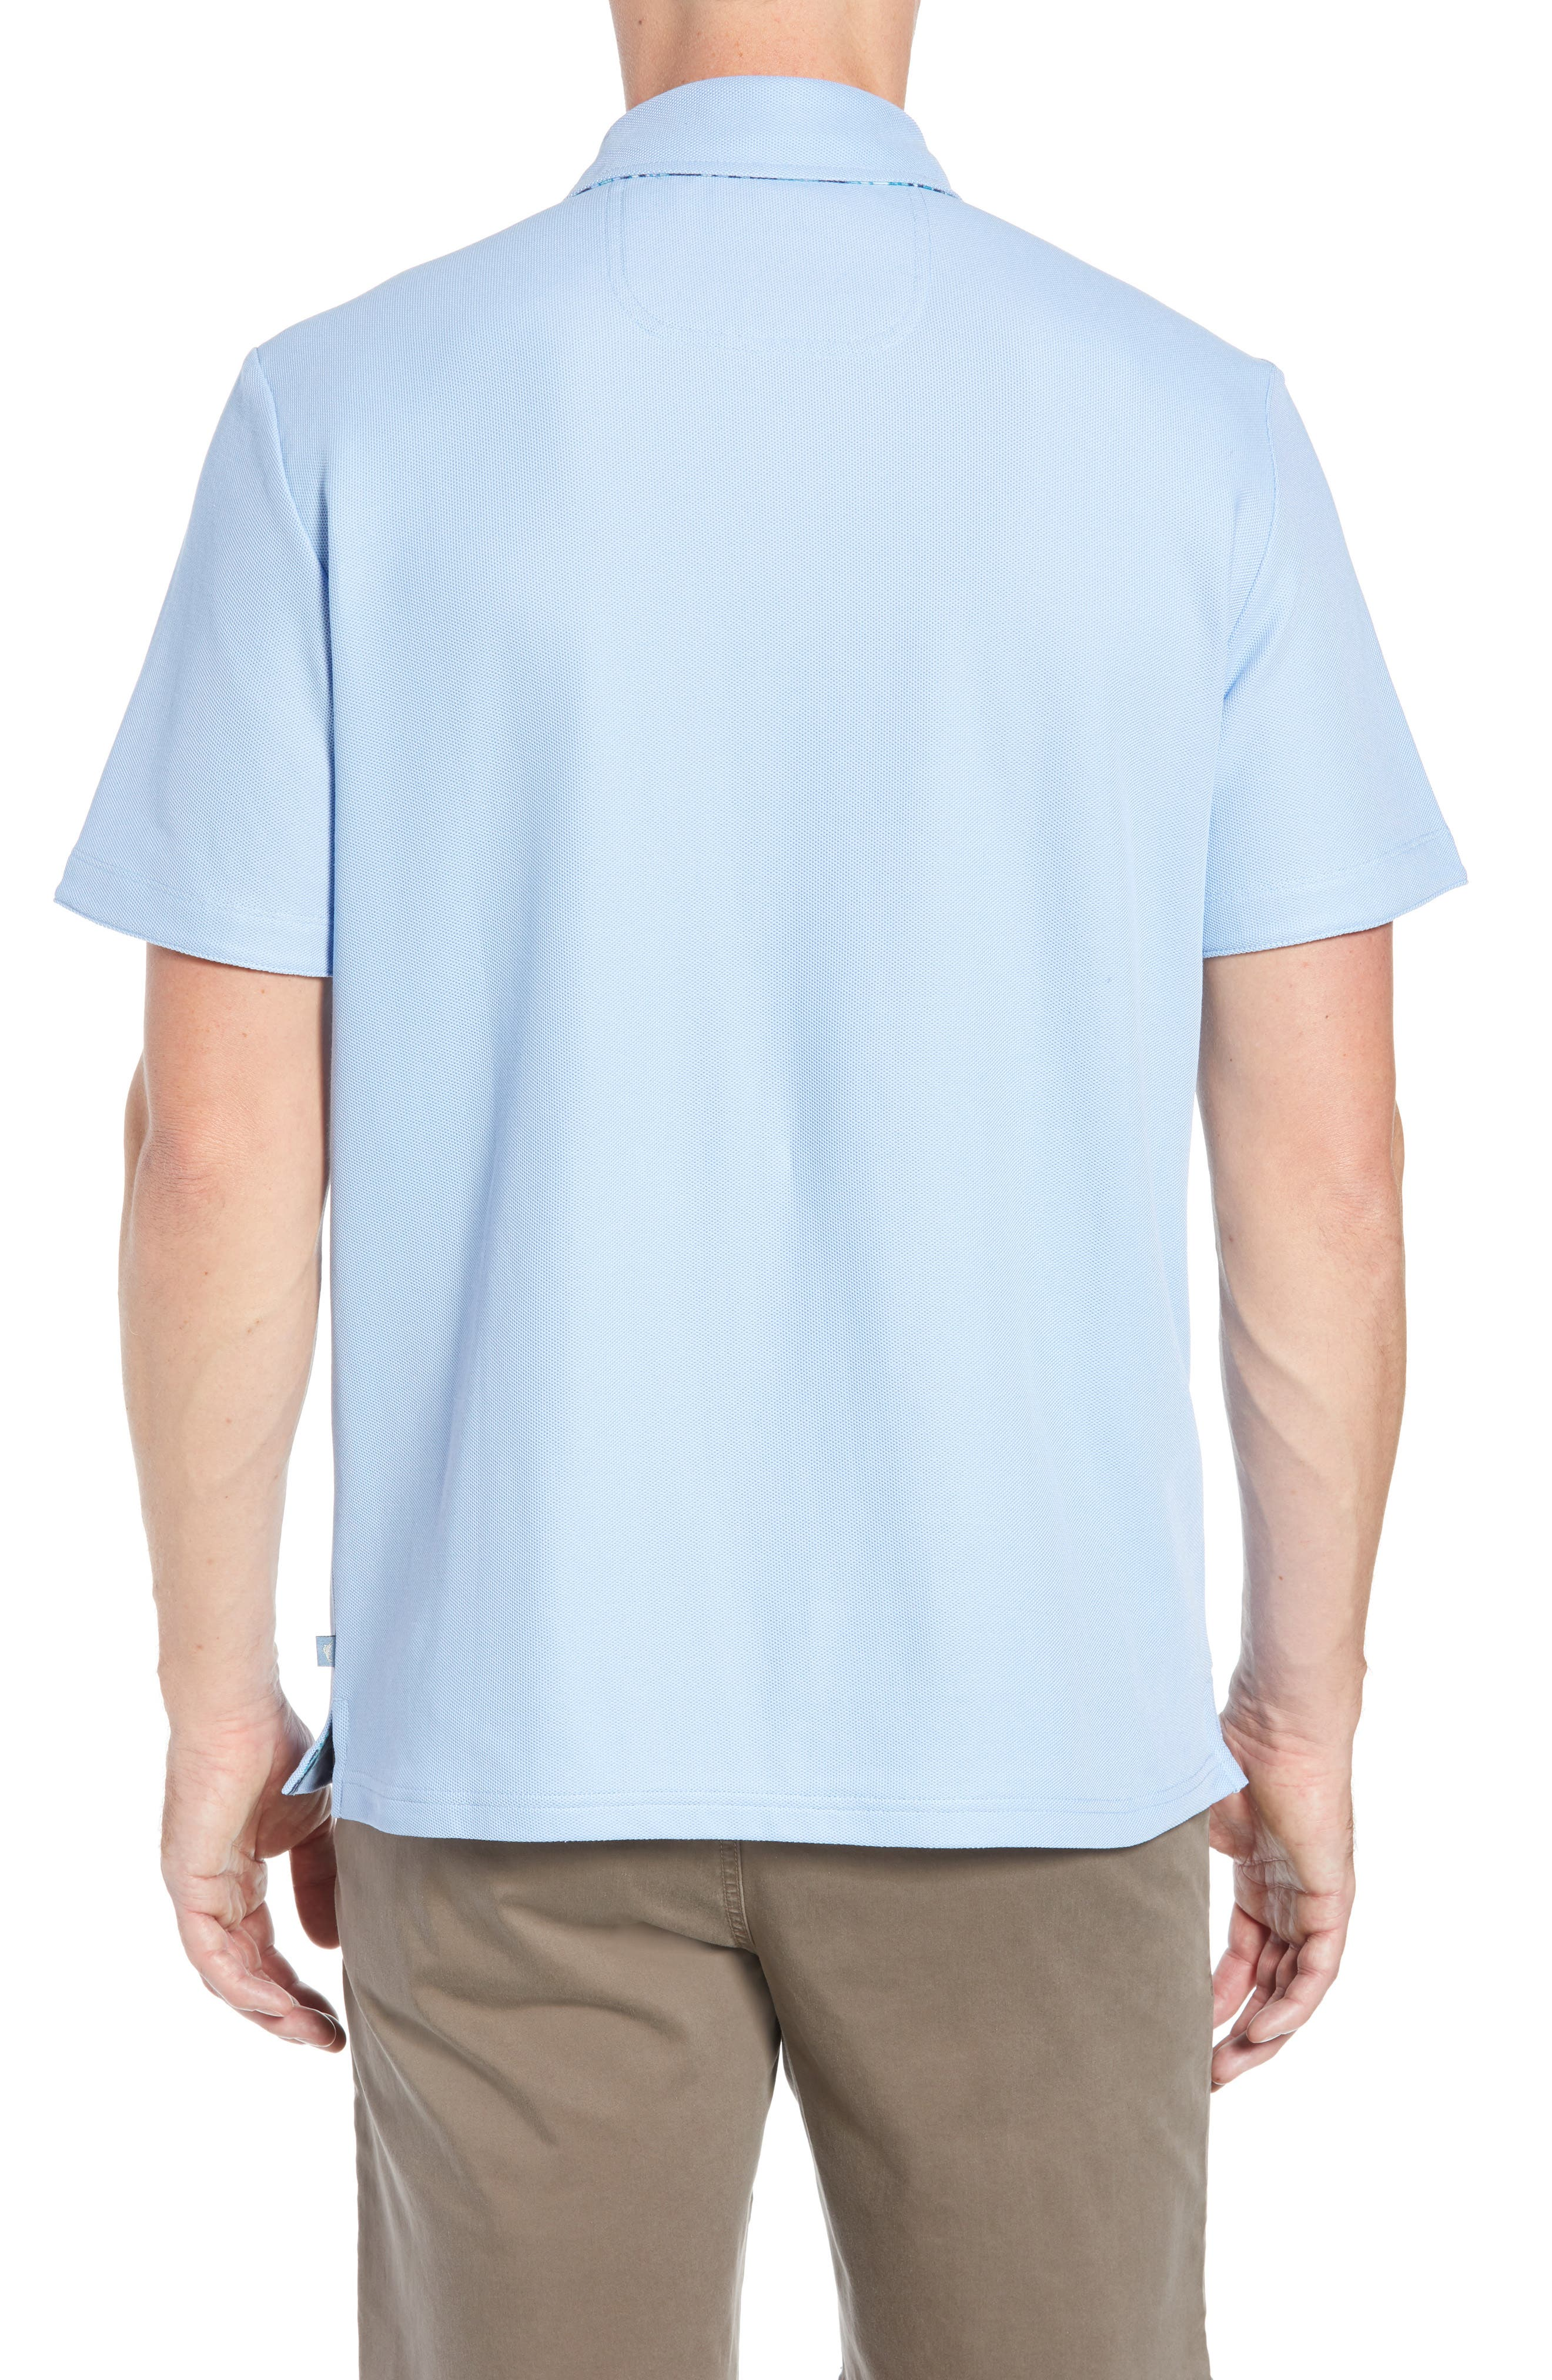 Five O'Clock Polo Shirt,                             Alternate thumbnail 2, color,                             400